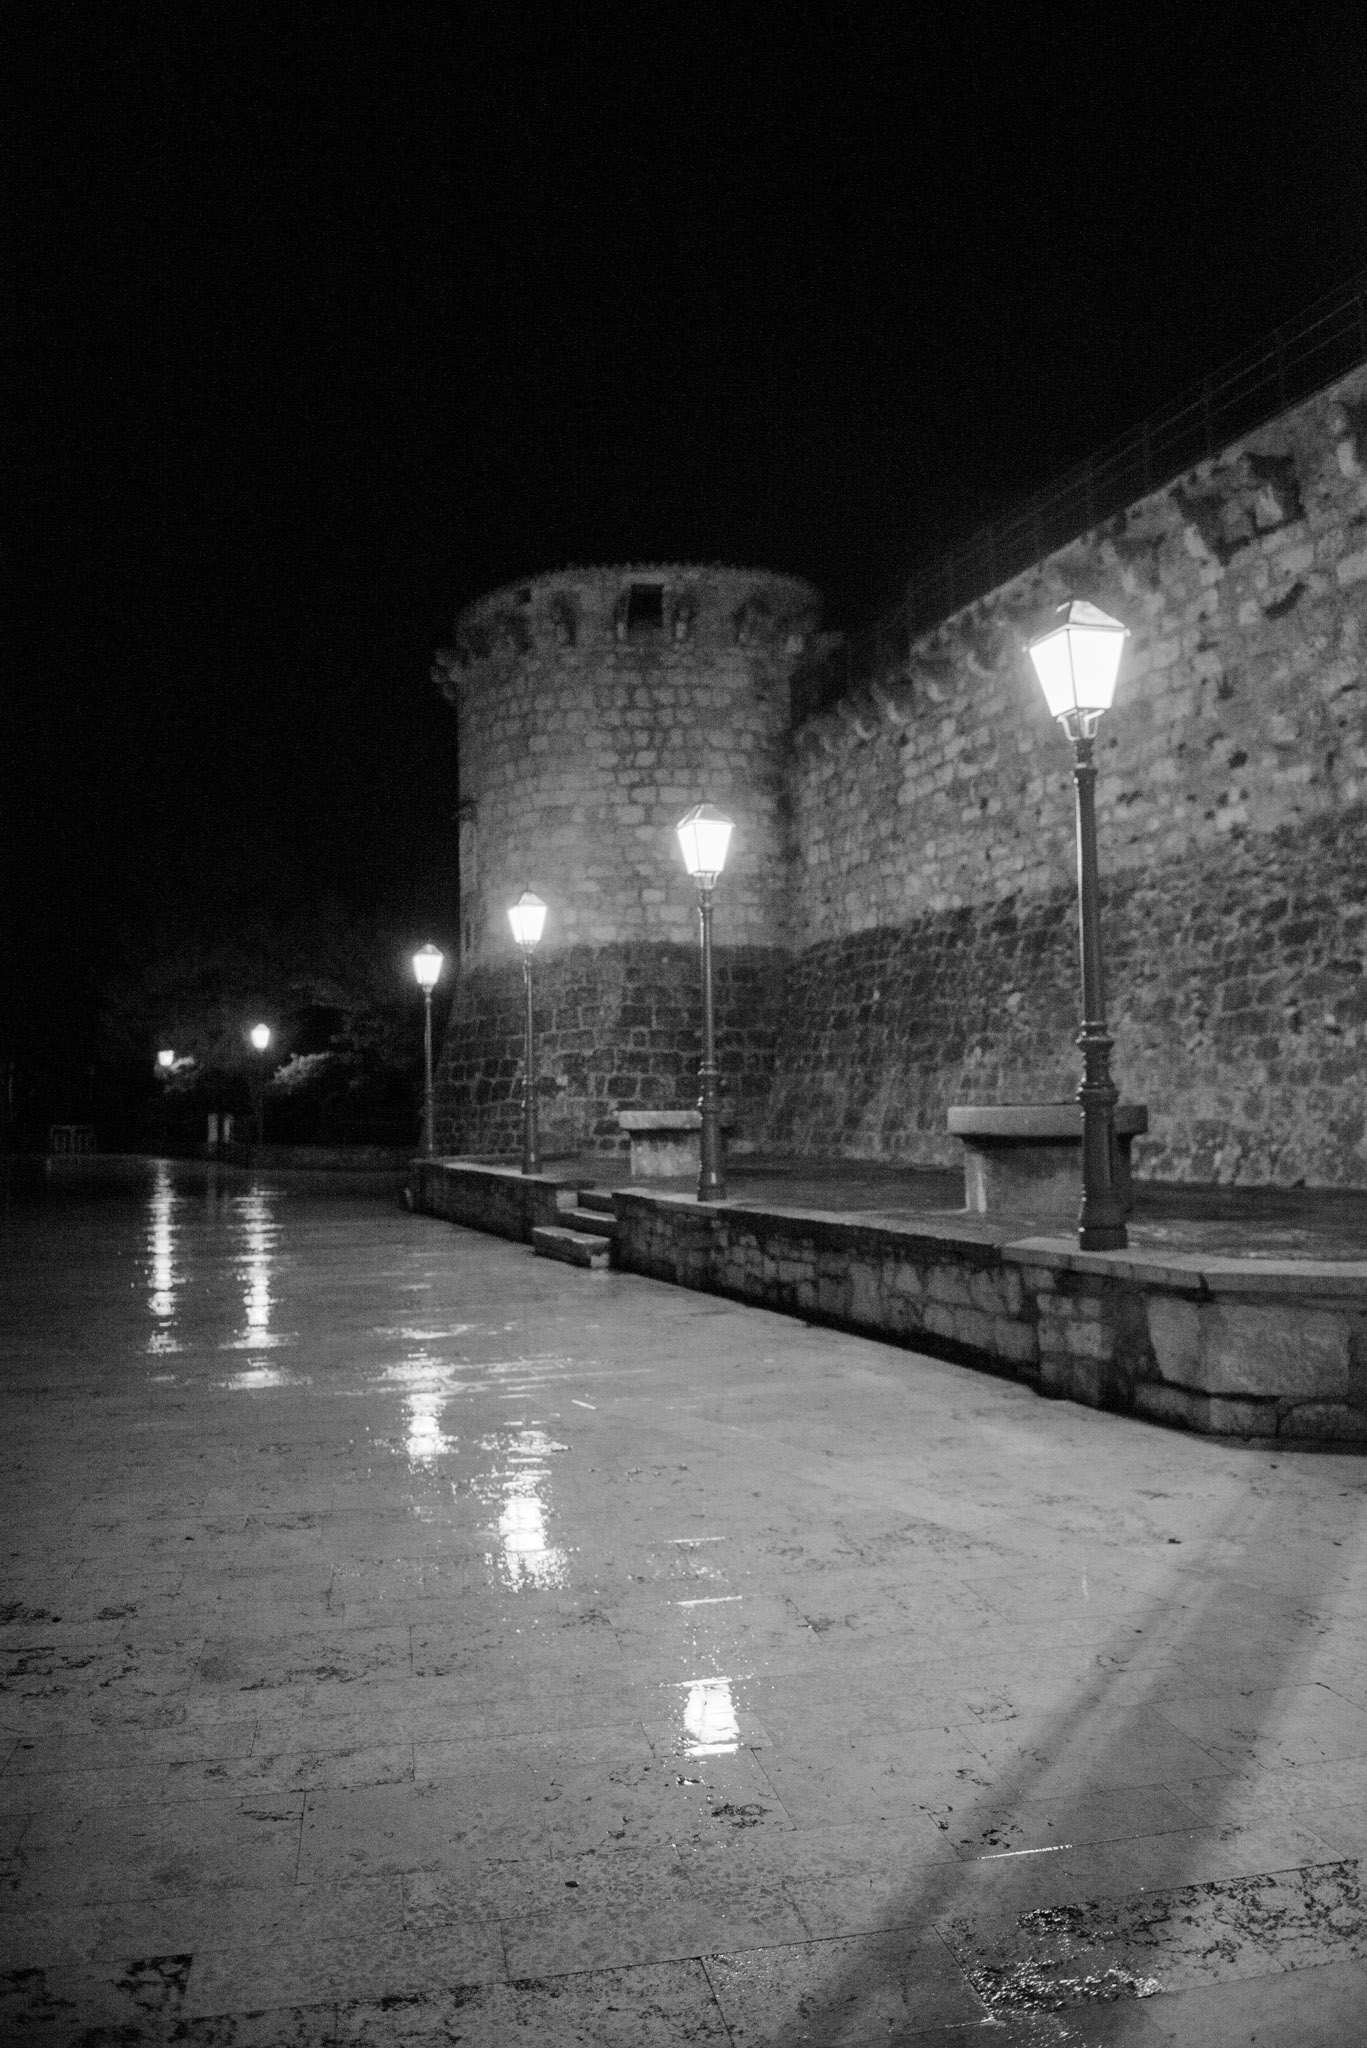 Street lights reflect in wet marble pavers along a wall of the Francopan Castle in Krk on the island of Krk in Croatia.